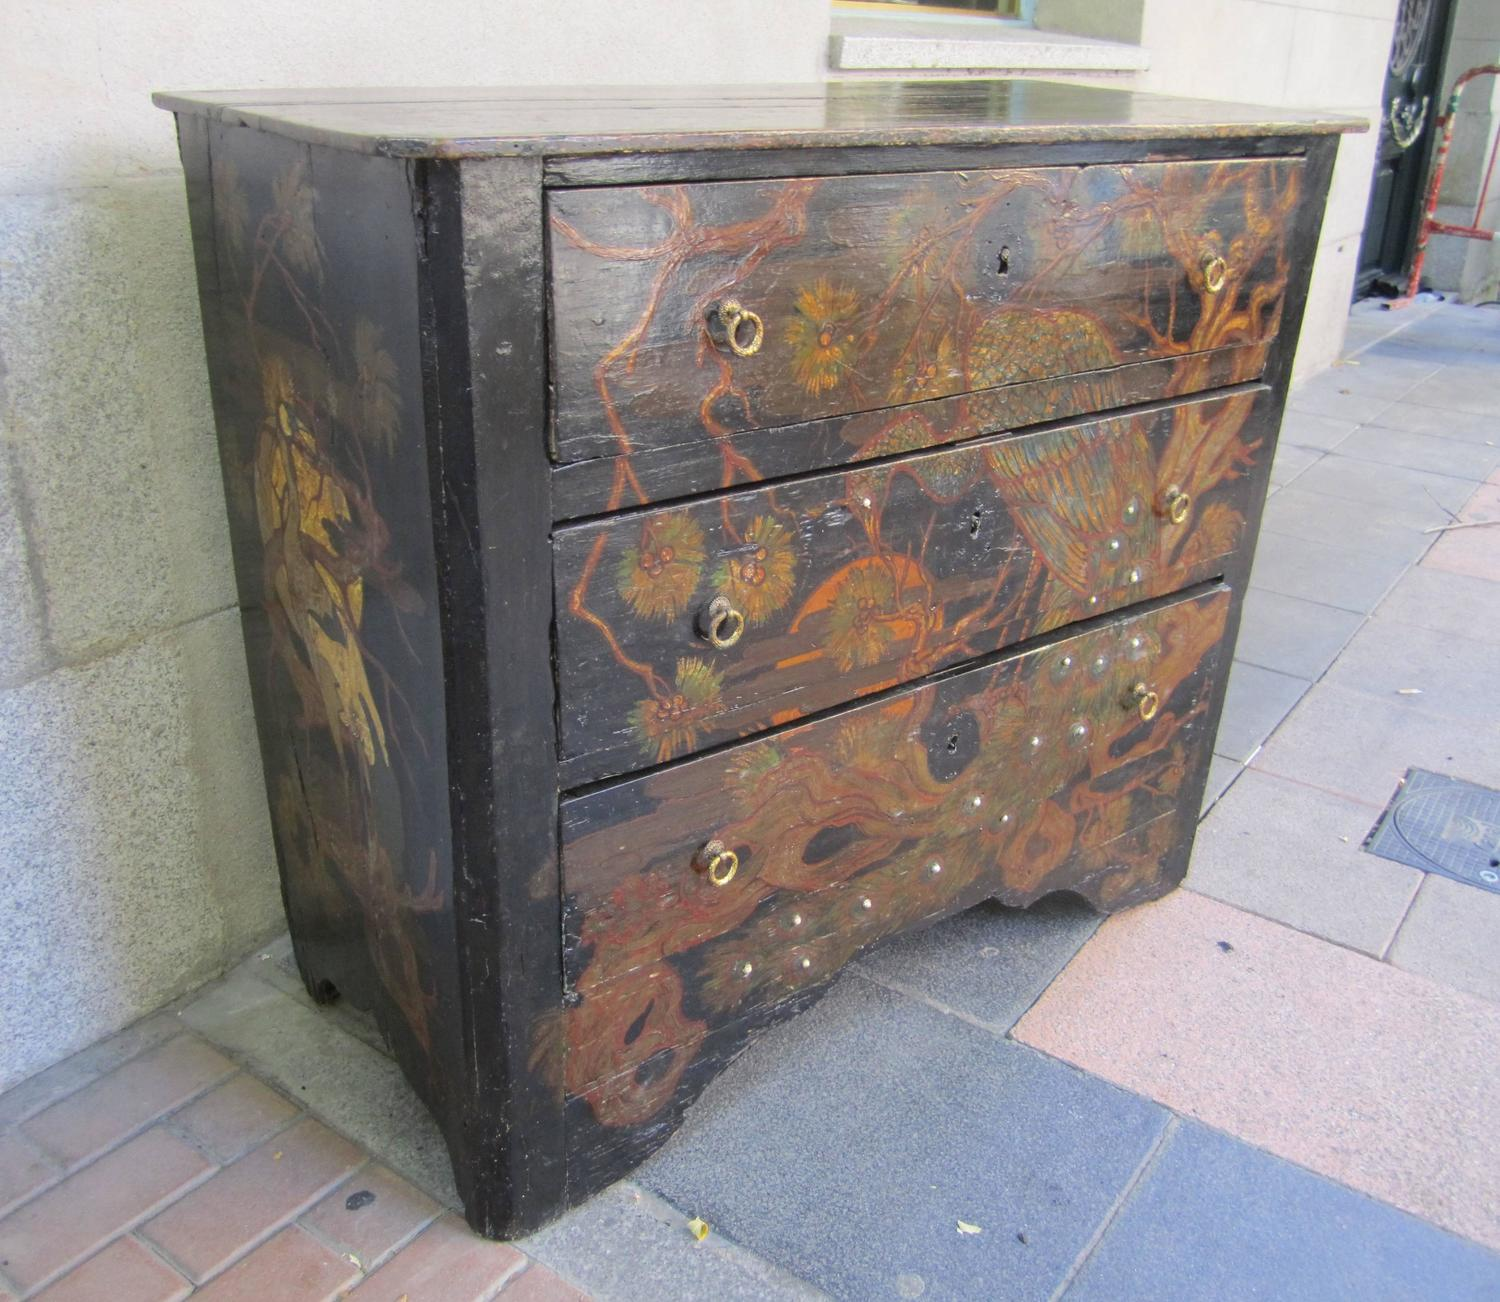 #485C83 Lacquer Wood Decorated Chest Of Drawers France 1800 For Sale At  with 1500x1302 px of Brand New Lacquered Chest Of Drawers 13021500 pic @ avoidforclosure.info